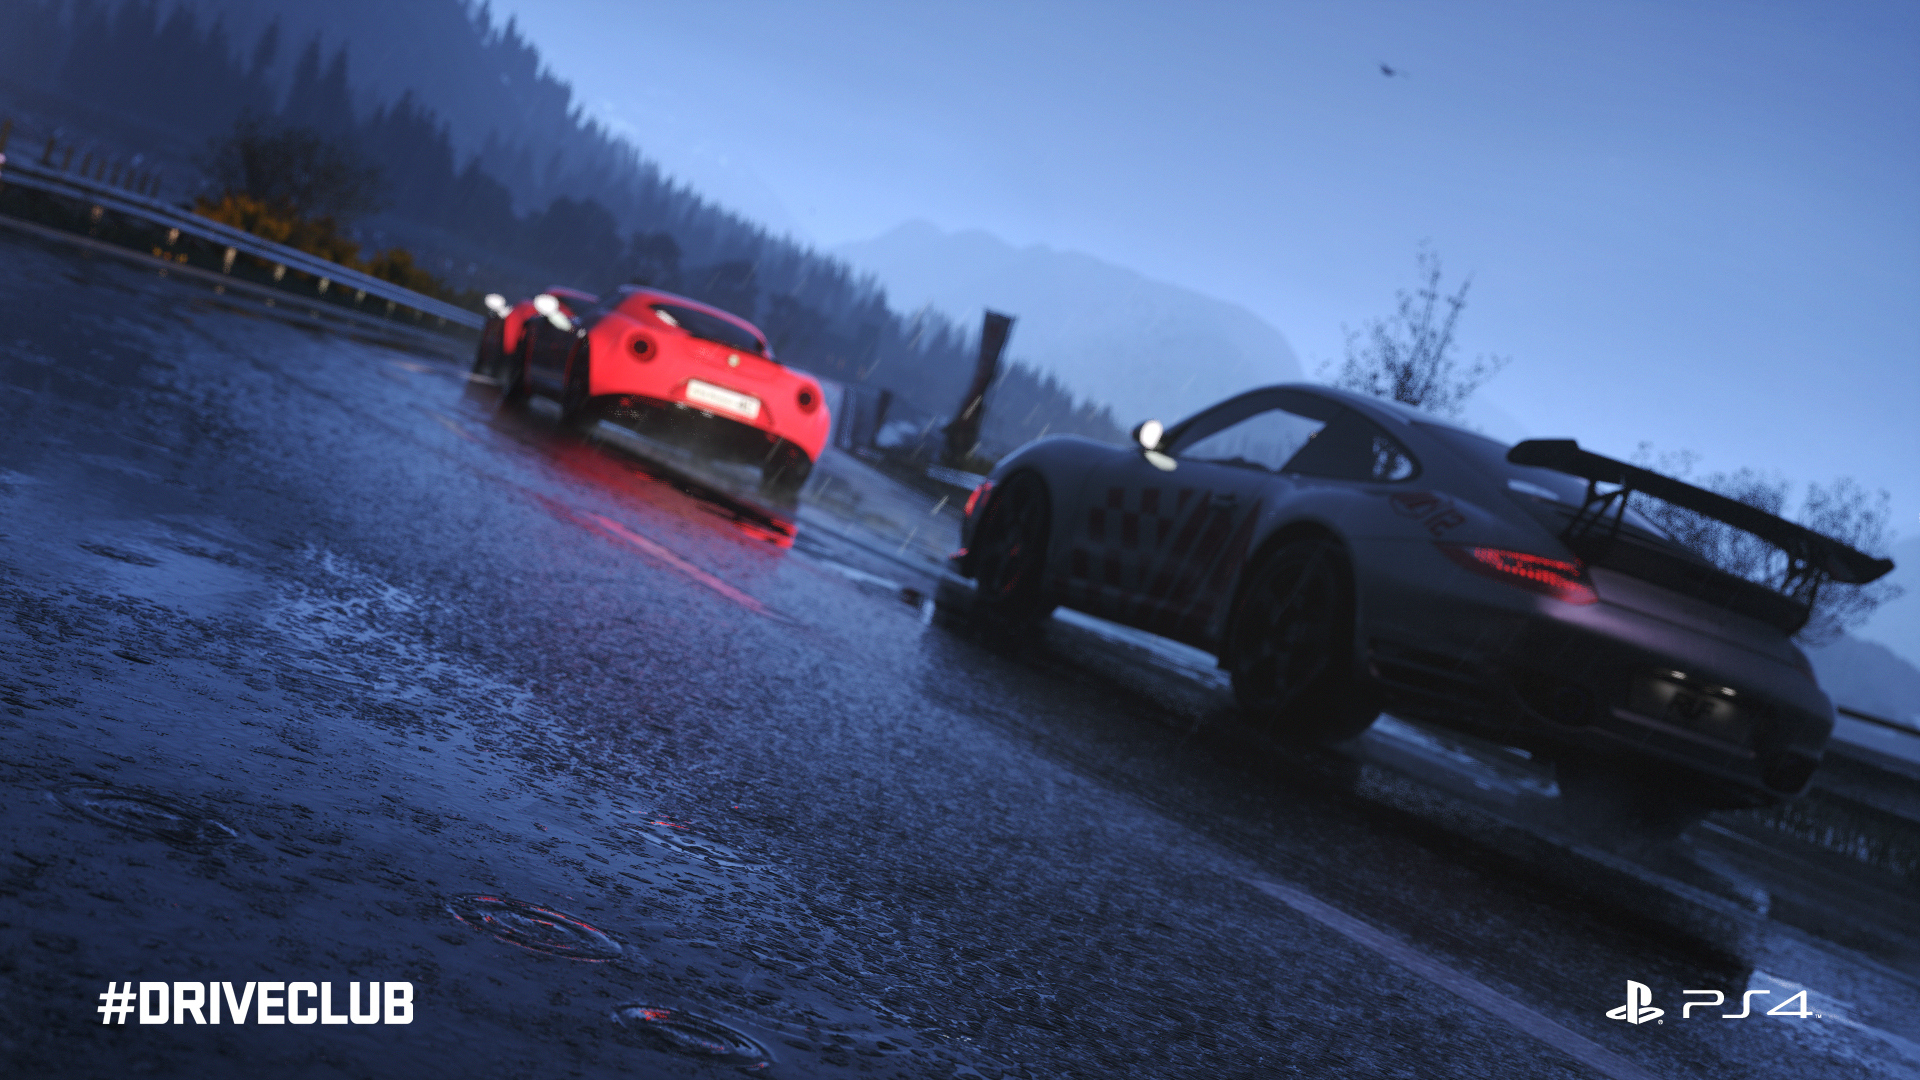 driveclub 1310